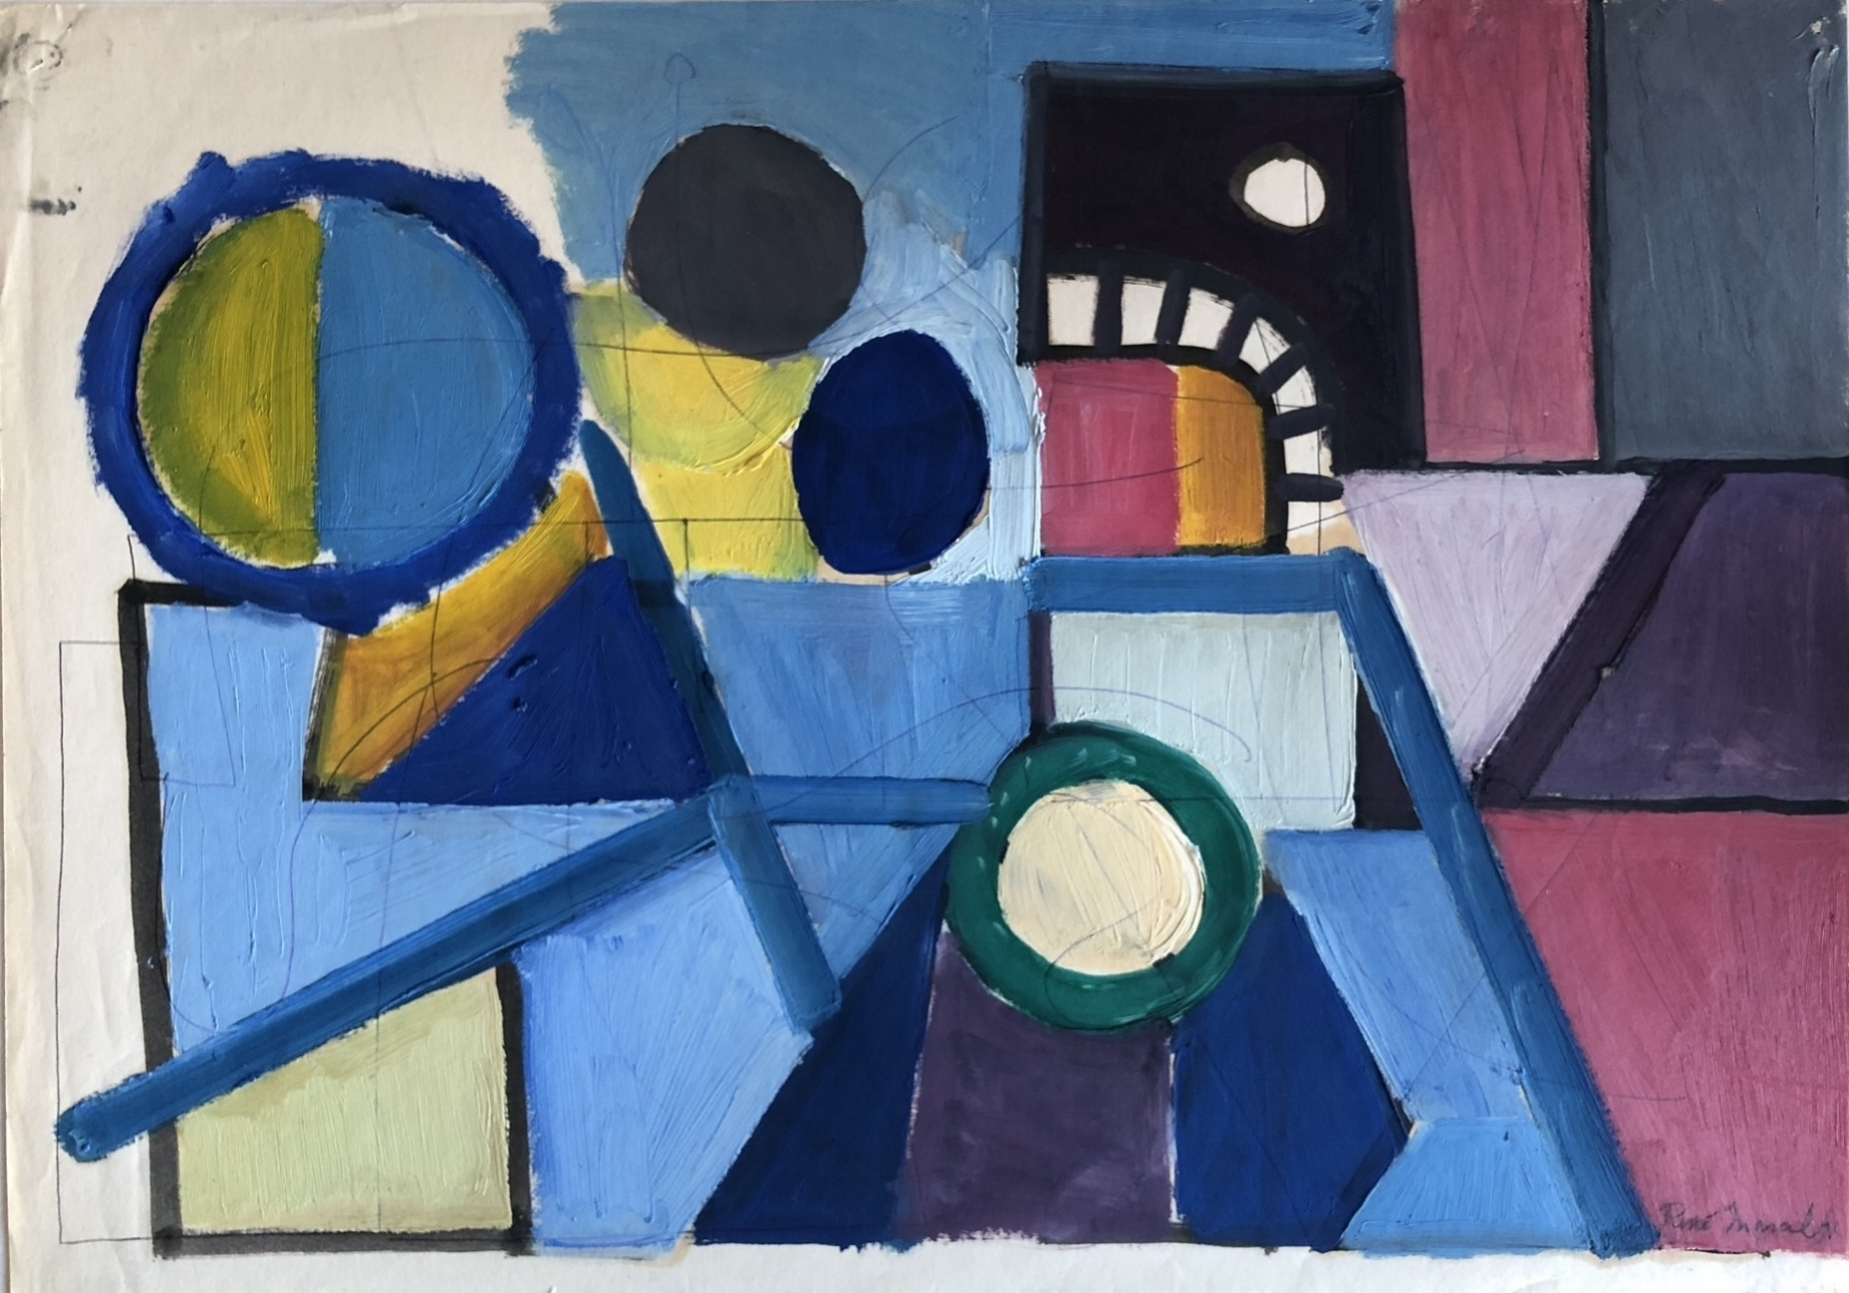 RenéMarcil Composition Gouache on paper Signed lower right 1971 16.5 x 23.35 in $4,500